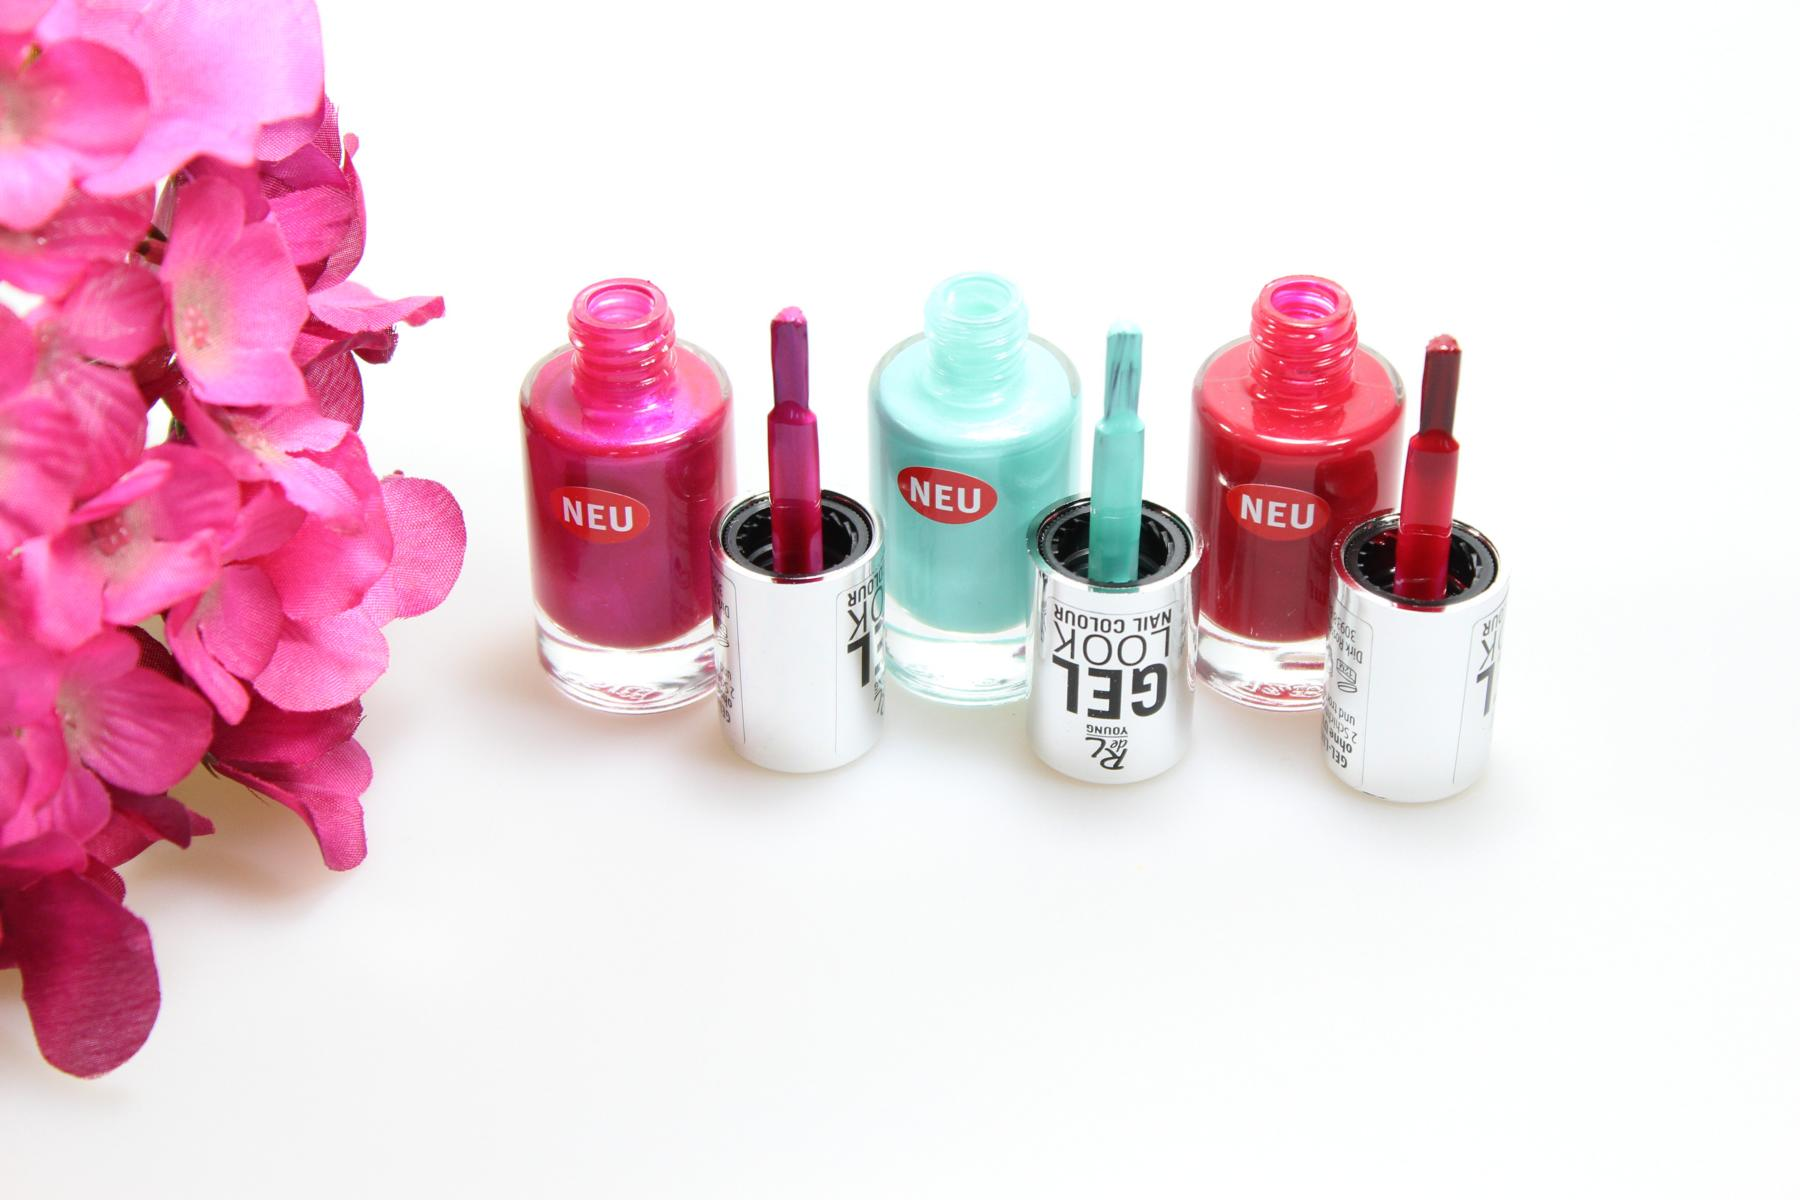 "Nagellackpinsel Rival de Loop Young - Gel Look Nail Colour Nagellacke ""06 Fuchsia Pearl"", ""08 Atlantis"", ""05 Night Rythm"""